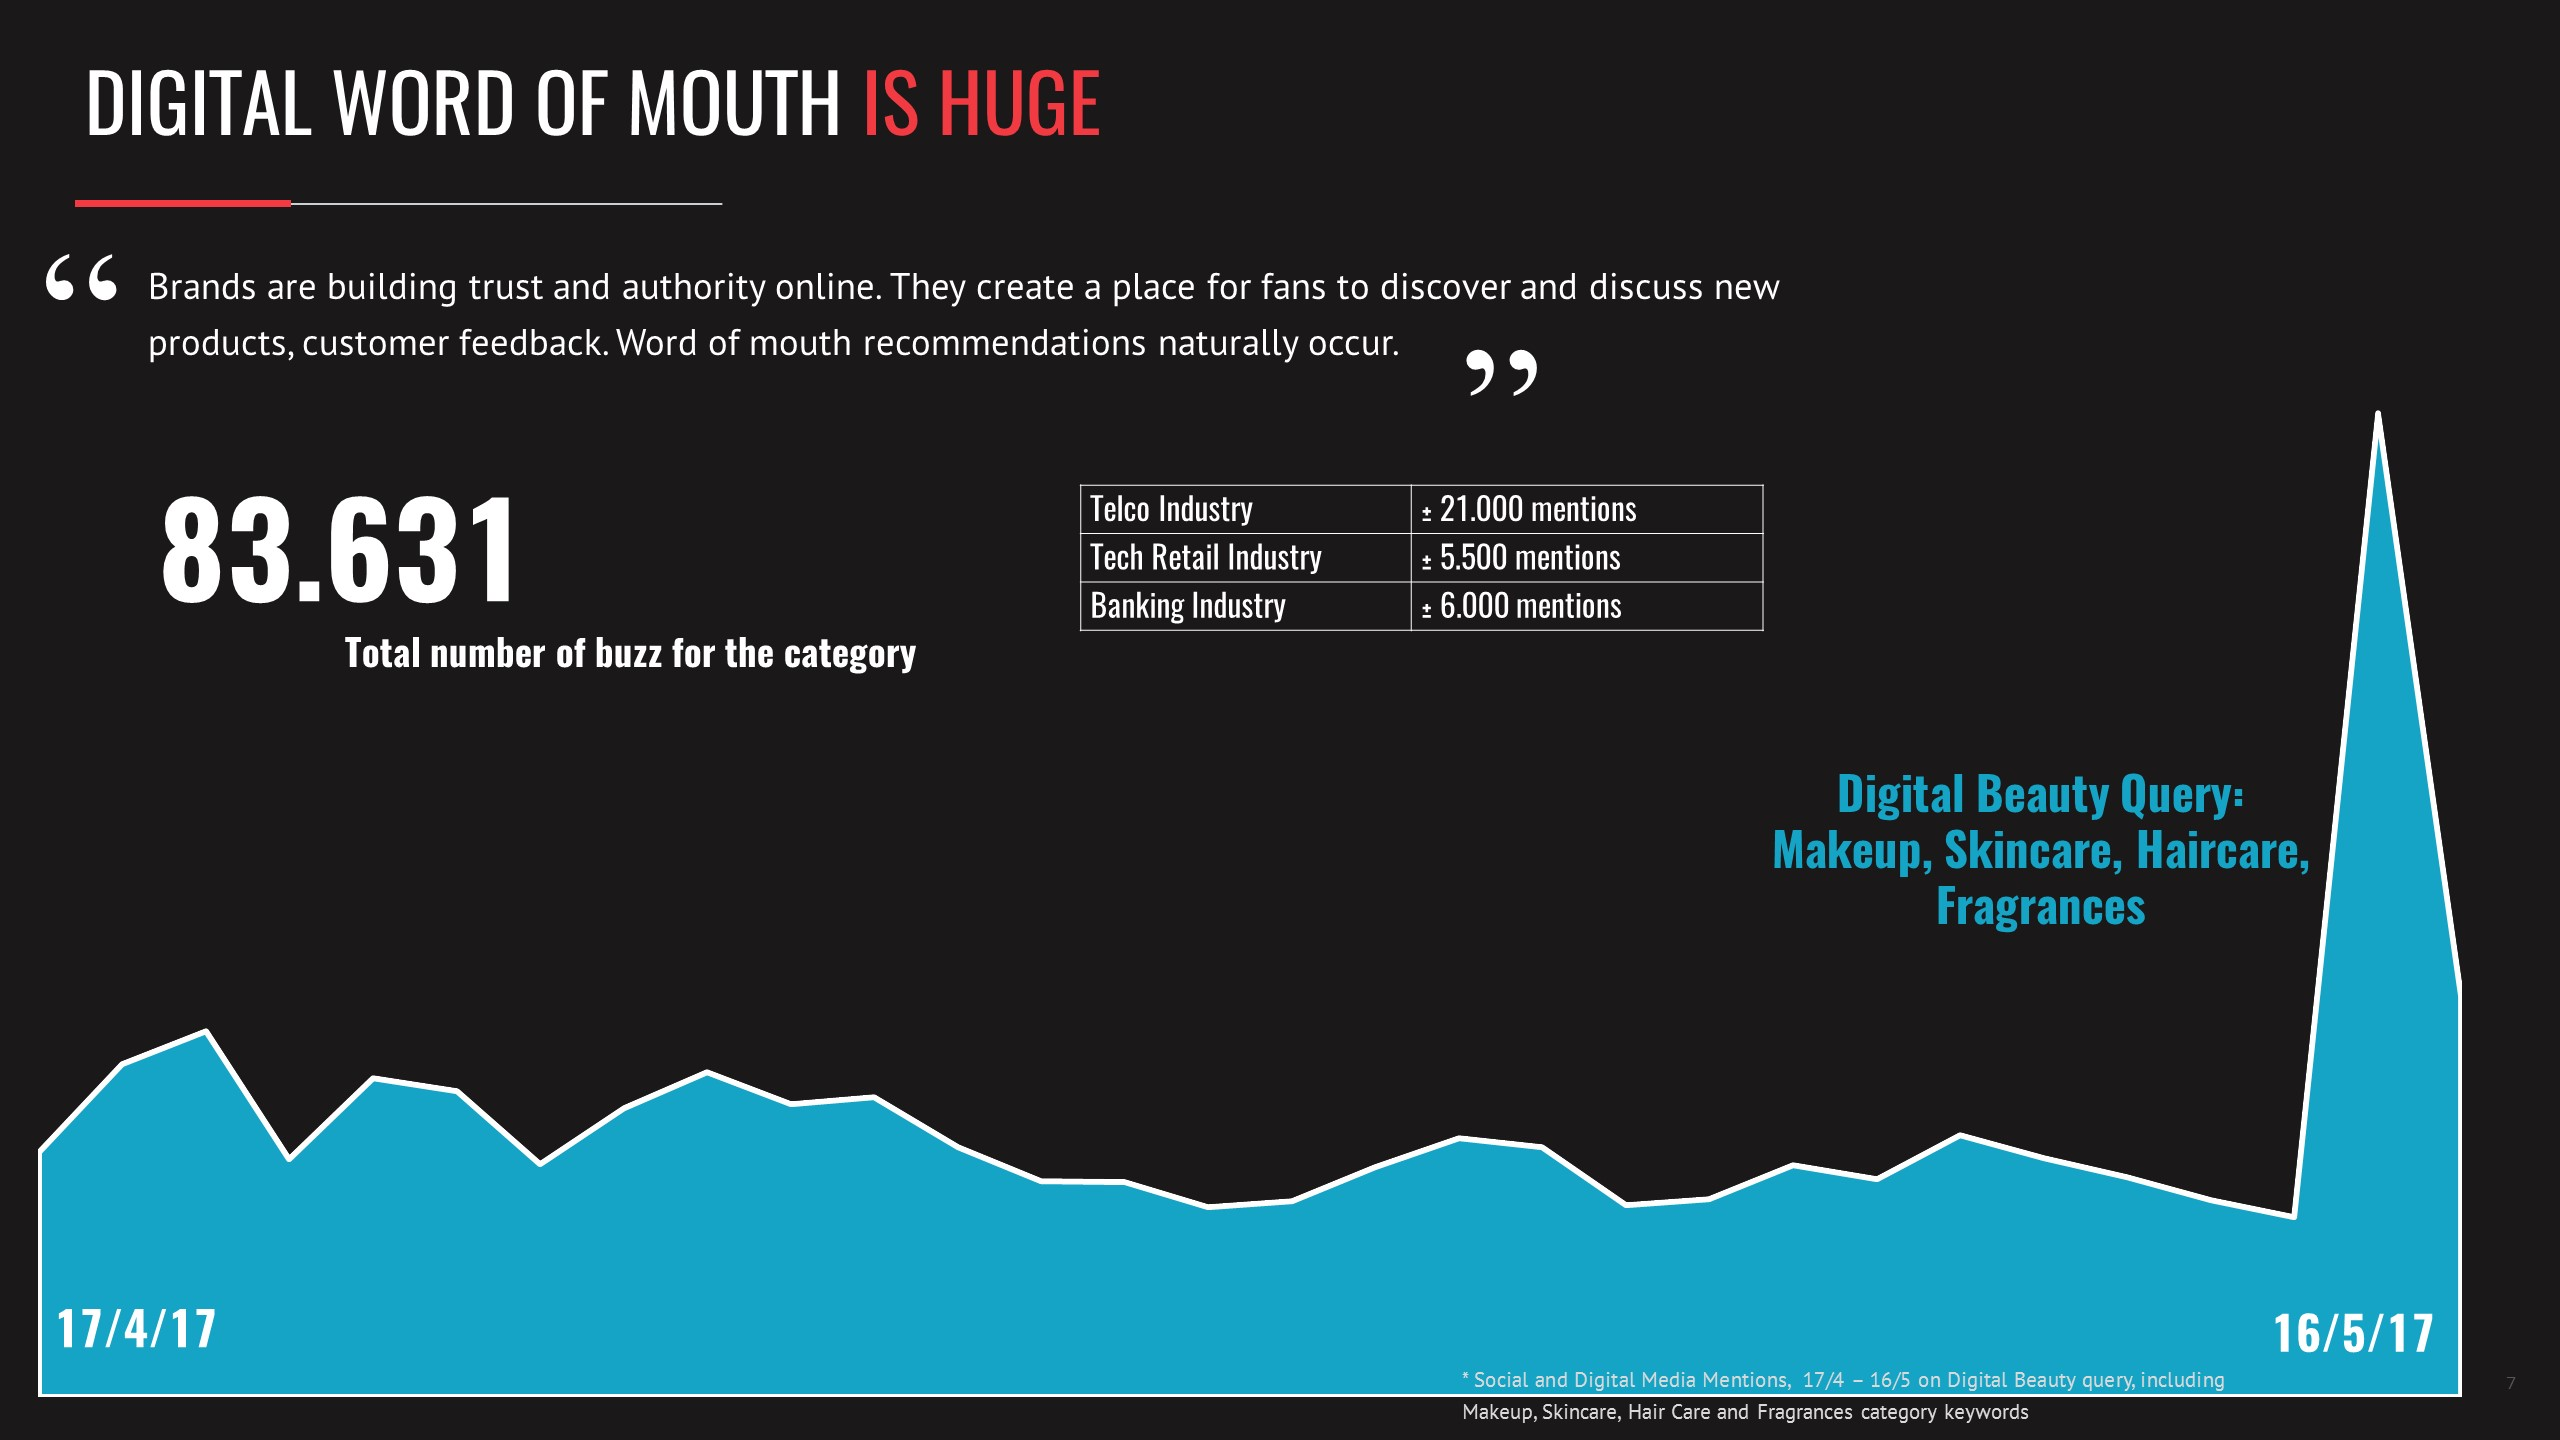 Digital Word of Mouth is Huge